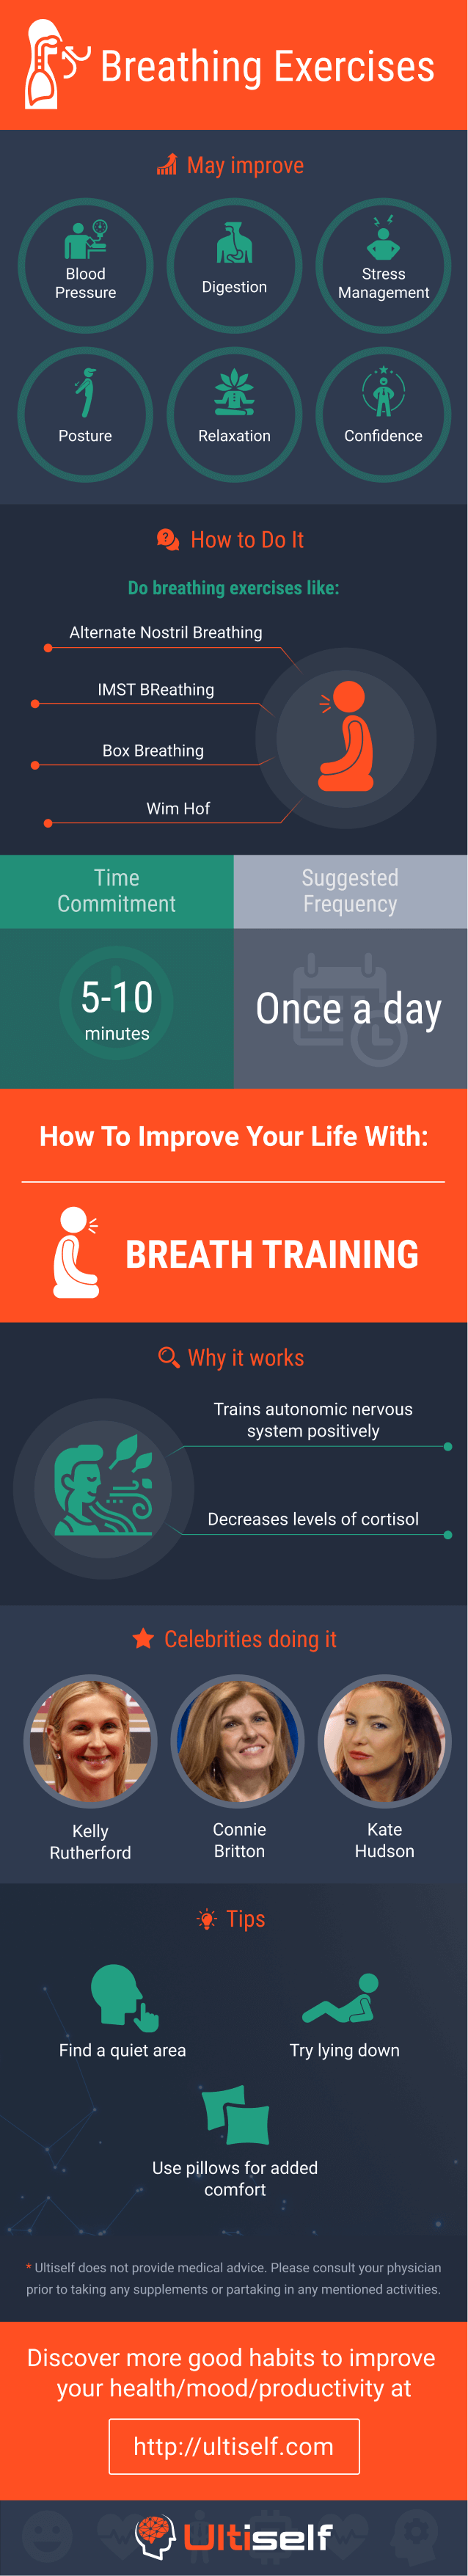 Breathing Exercises infographic